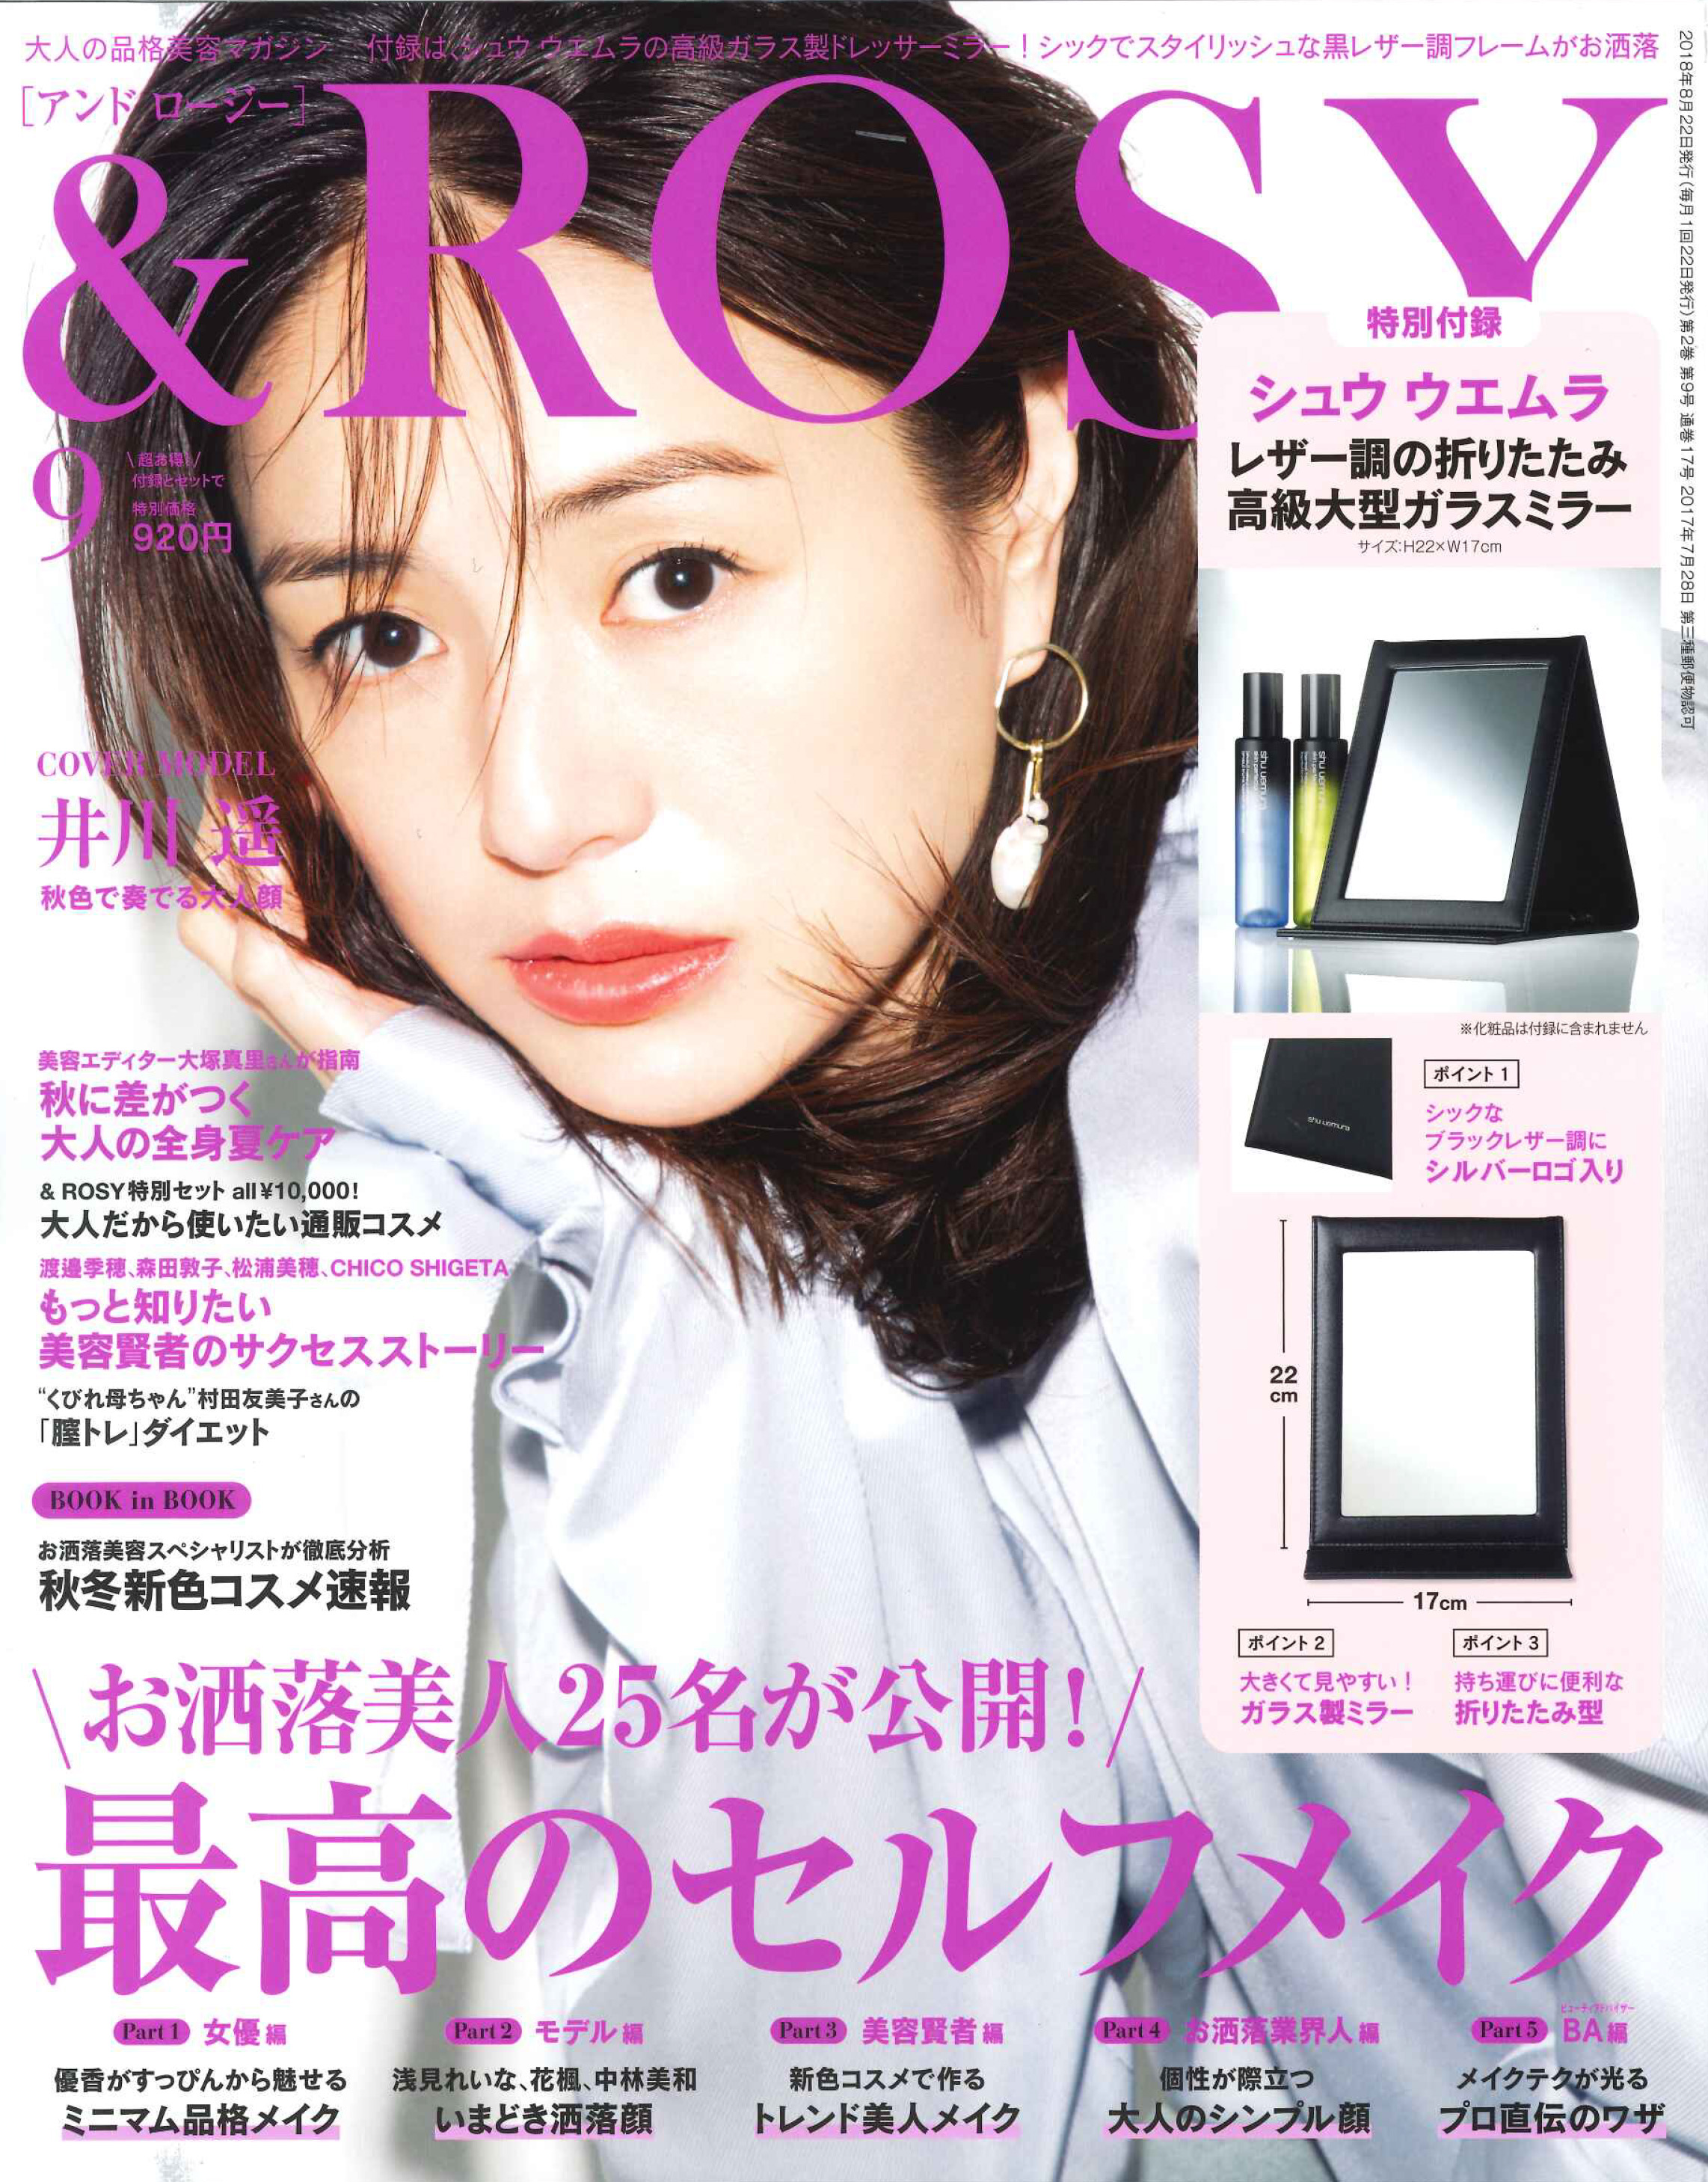 rosy 2018 september issue mt metatron official